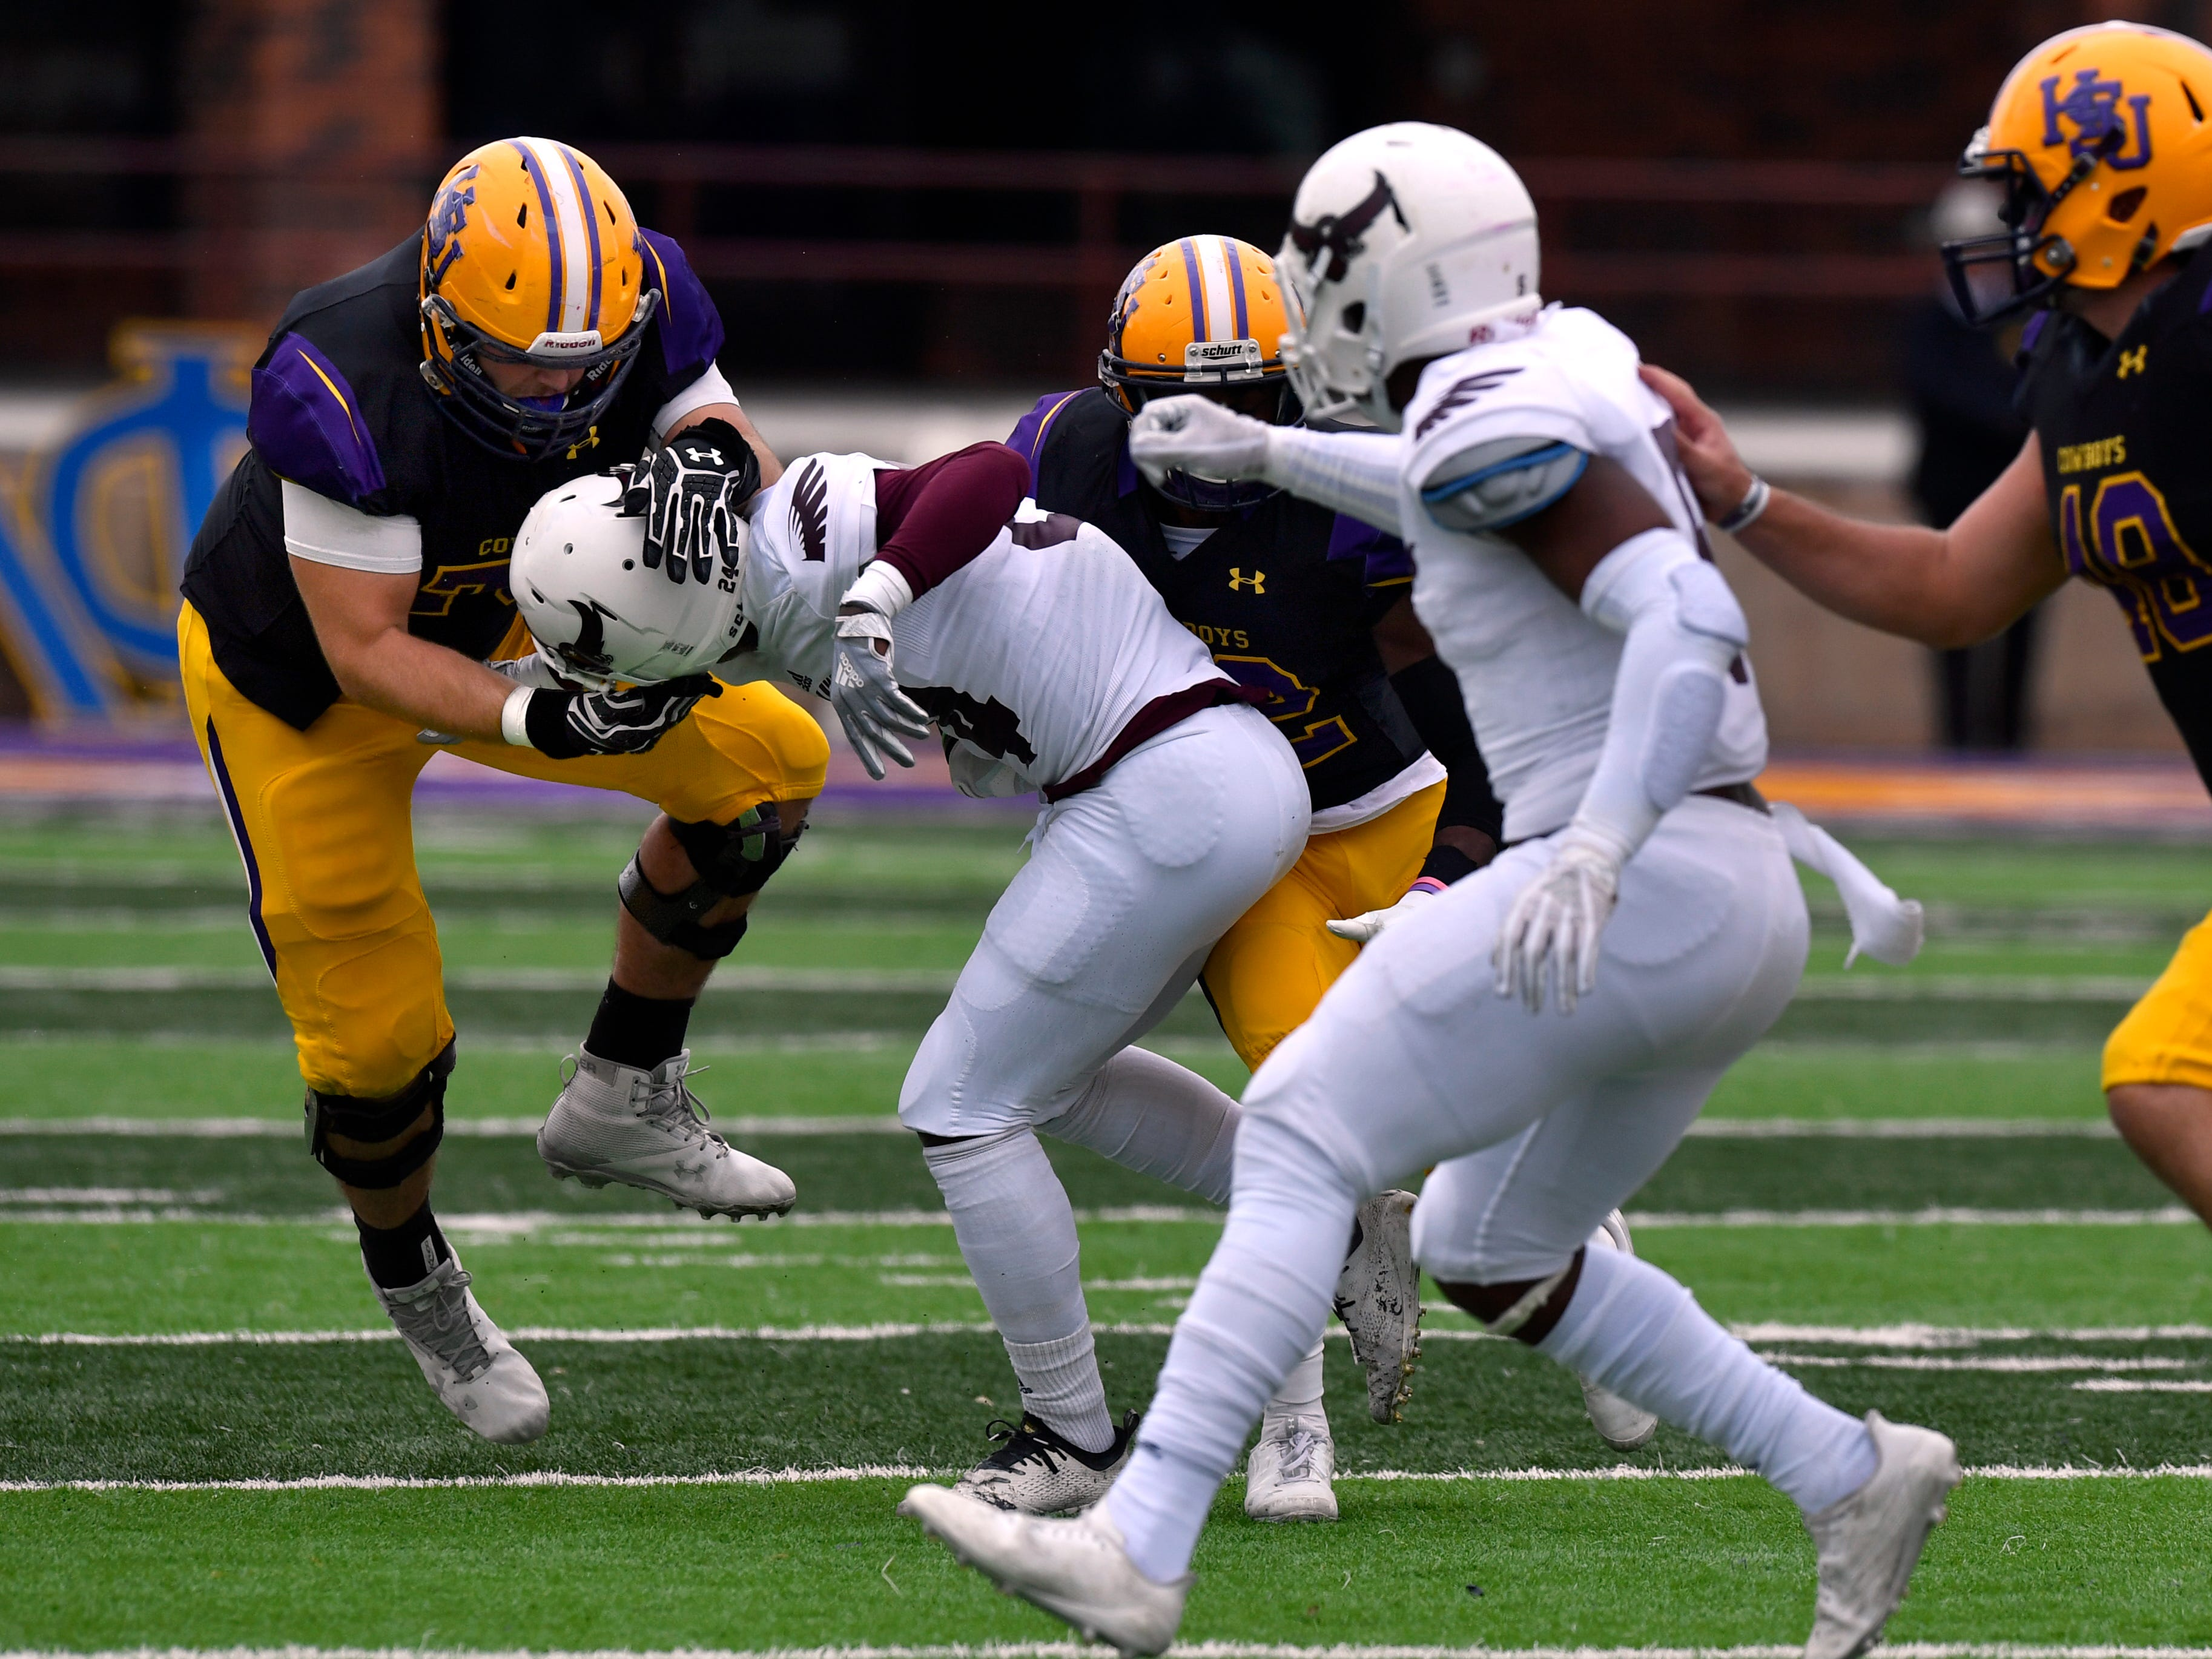 Cowboys offensive lineman Ty Crain wrenches the helmet of McMurry University defensive back Edward Coleman, jr., trying to clear the way for wide receiver Kevi Evans during Saturday's game Nov. 10, 2018. Final score was 83-6, Hardin-Simmons University.